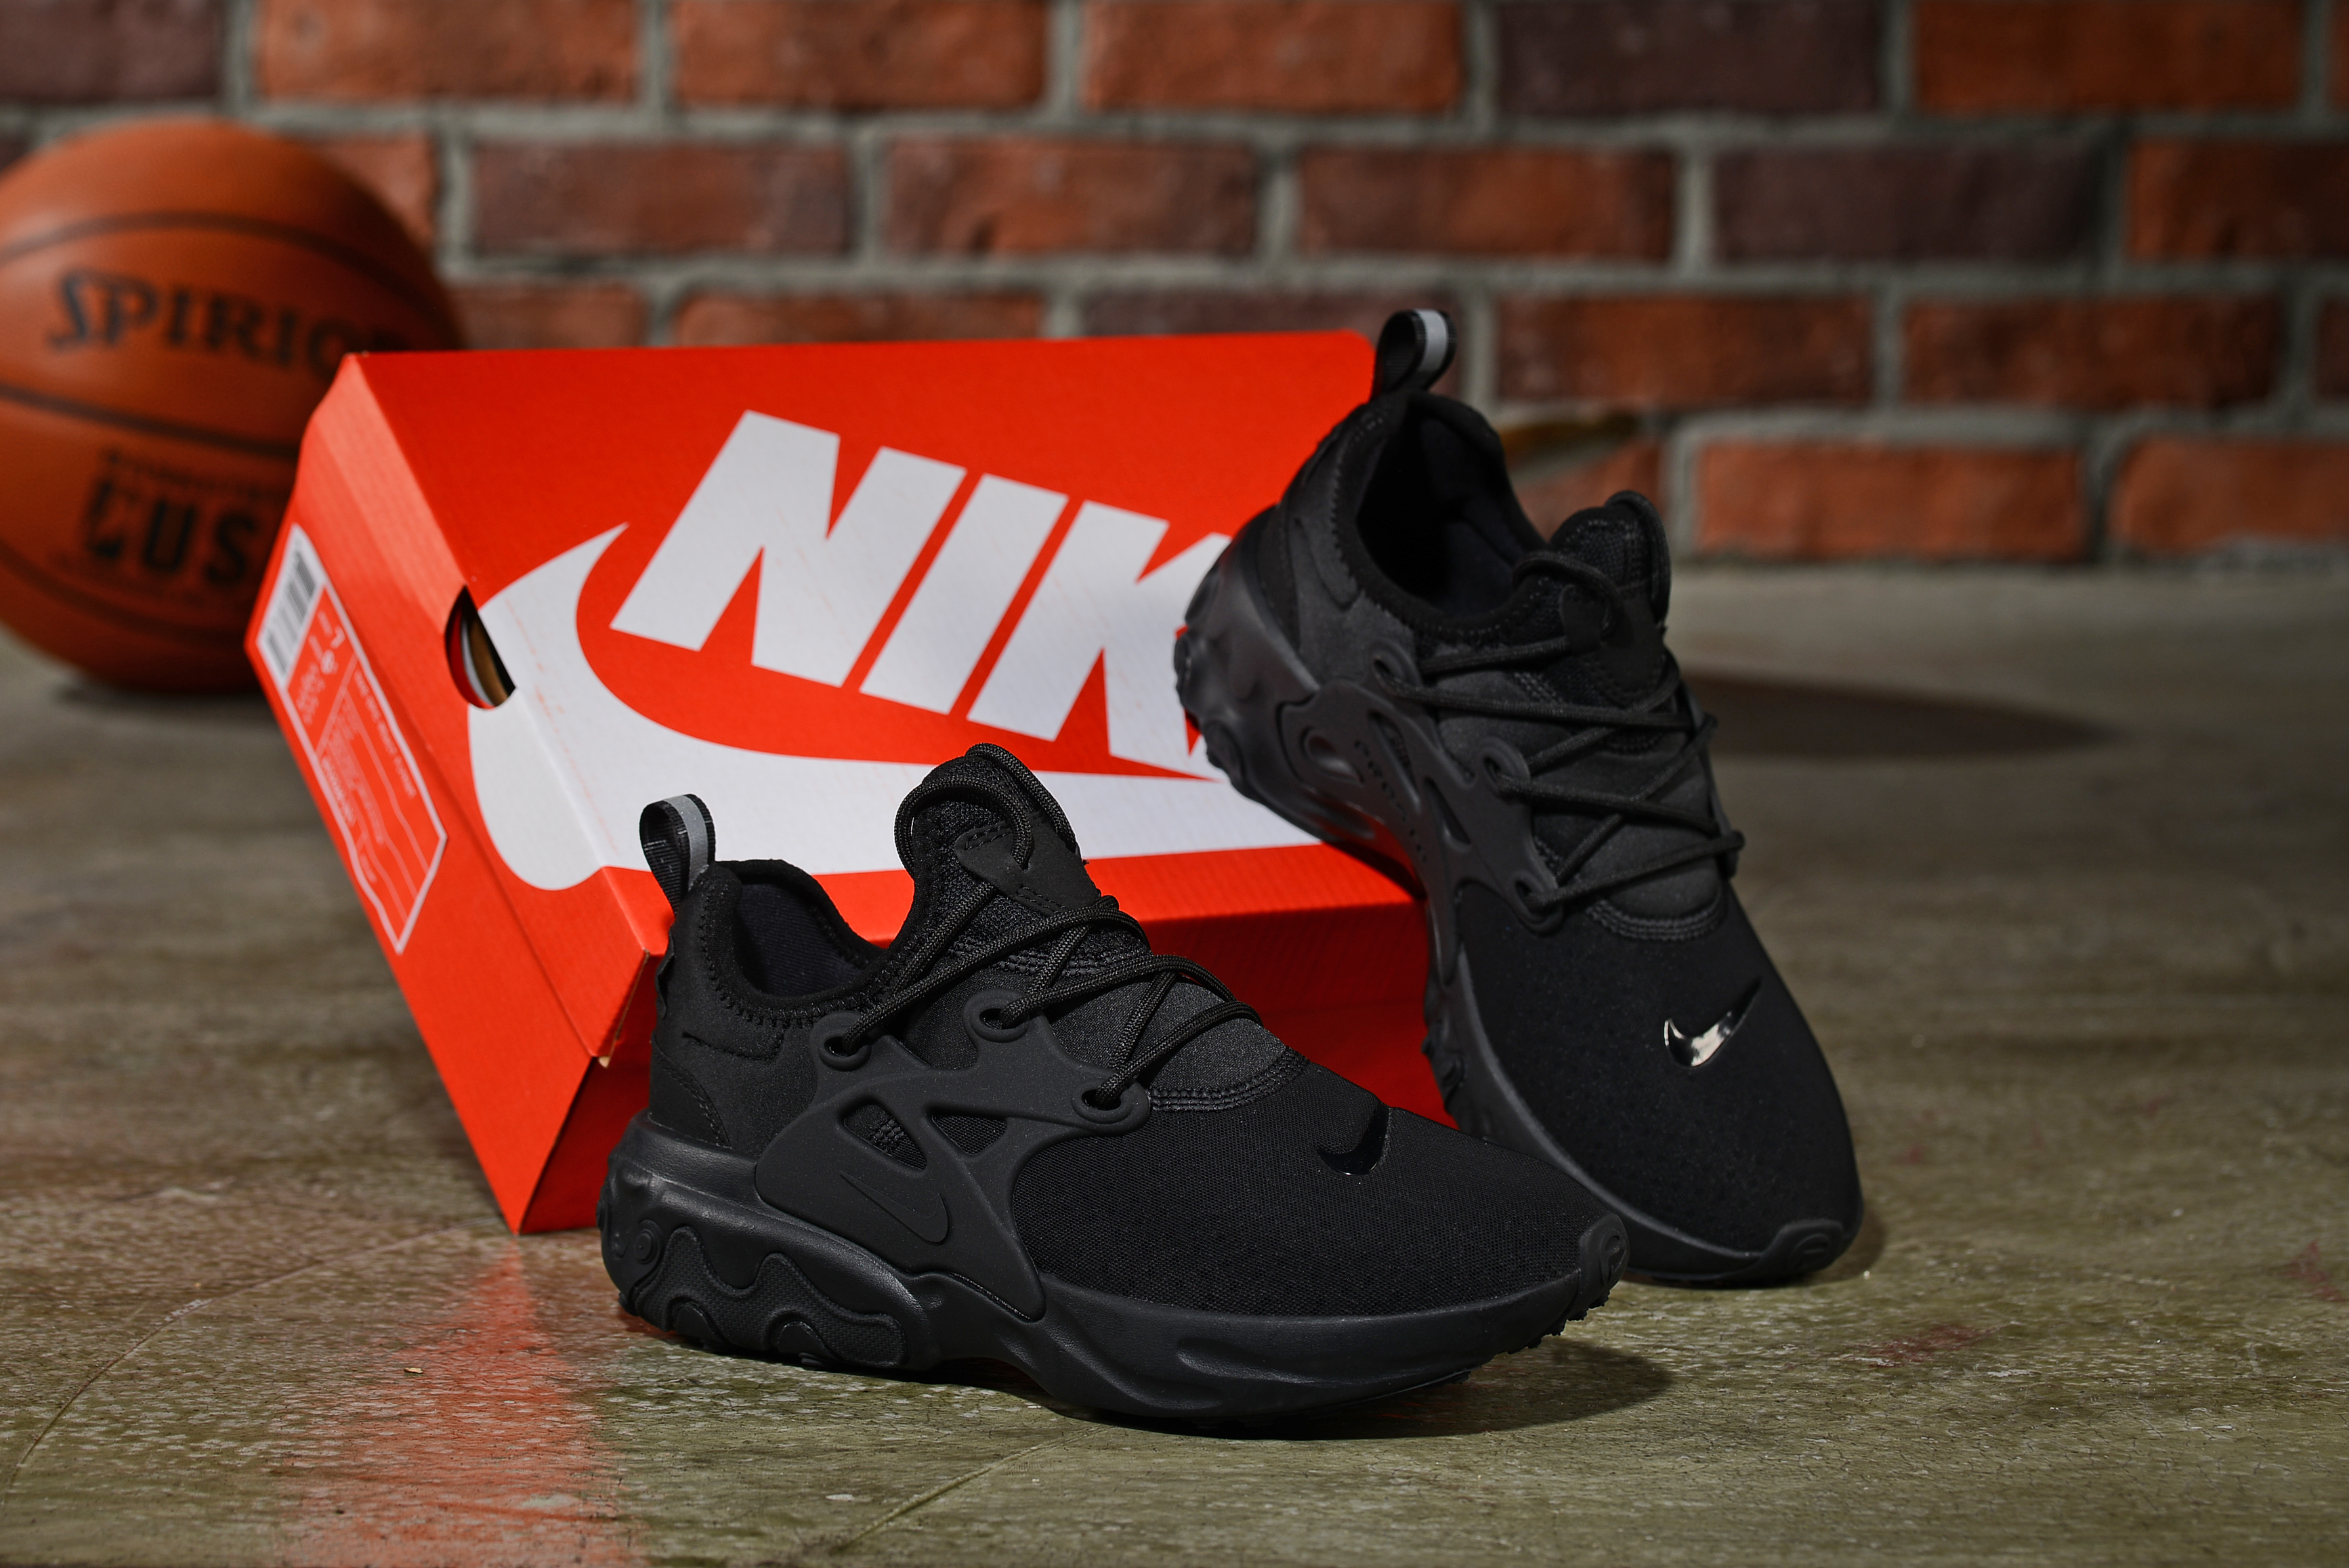 2019 Women Nike Epeic React All Black Shoes